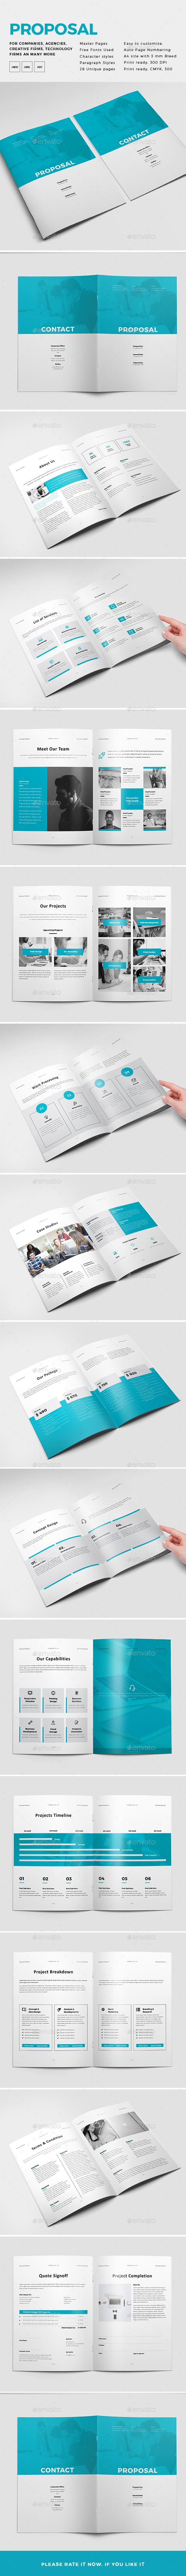 This a multipurpose brochure for all kind of business. This brochure included with all the essential brochure format to run your business and it's having wide variety of multipurpose use.